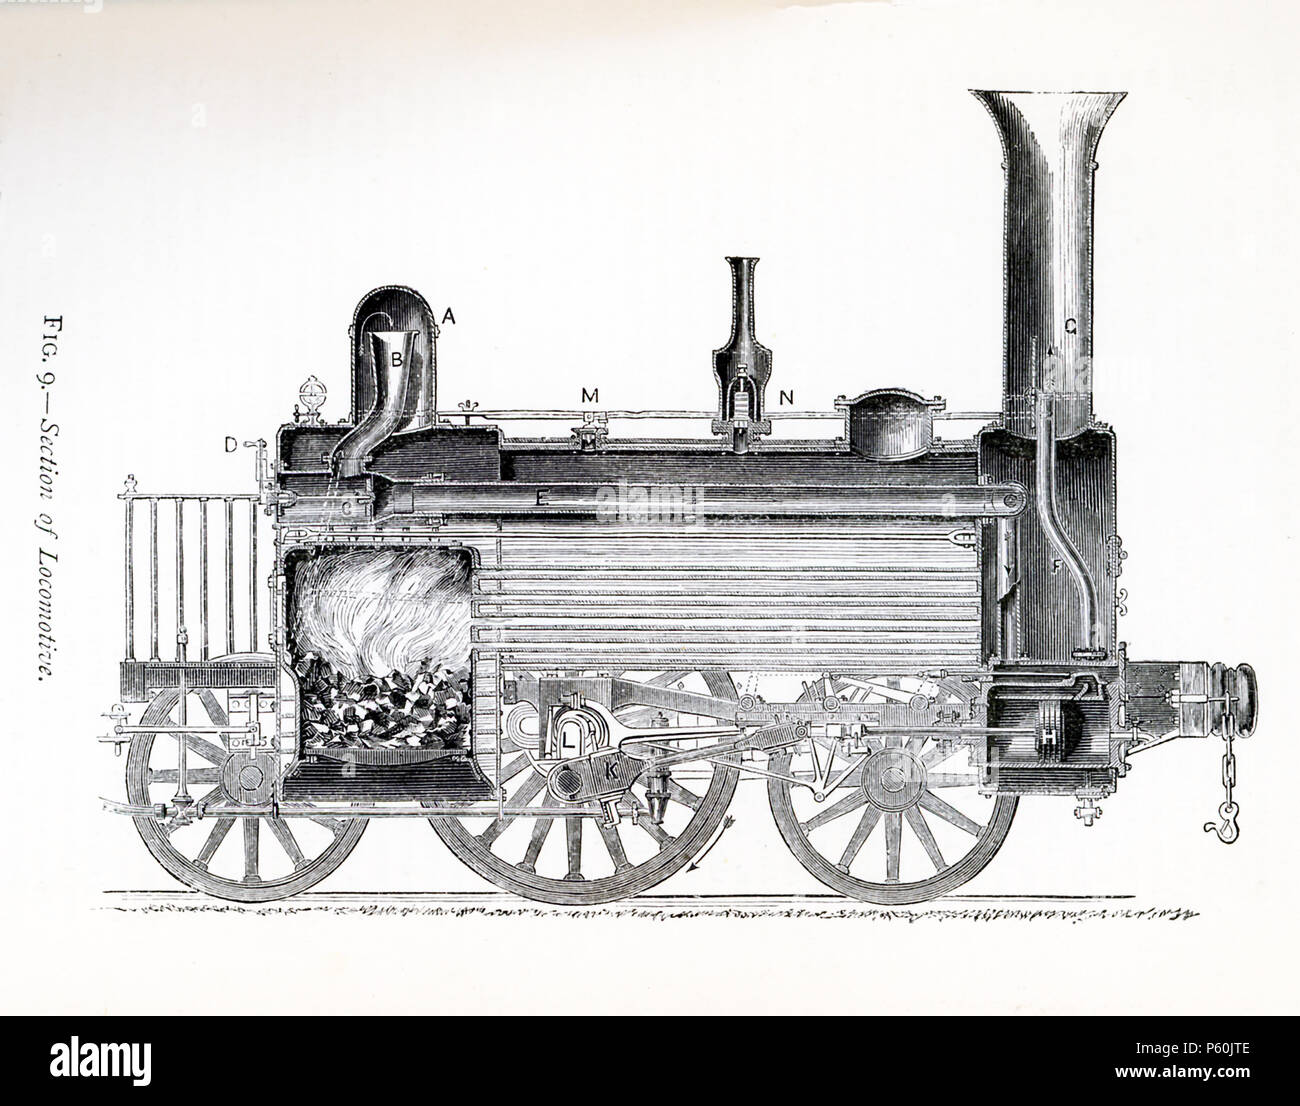 hight resolution of this 1870s illustration shows a section of a locomotive in the 1870s the boiler is